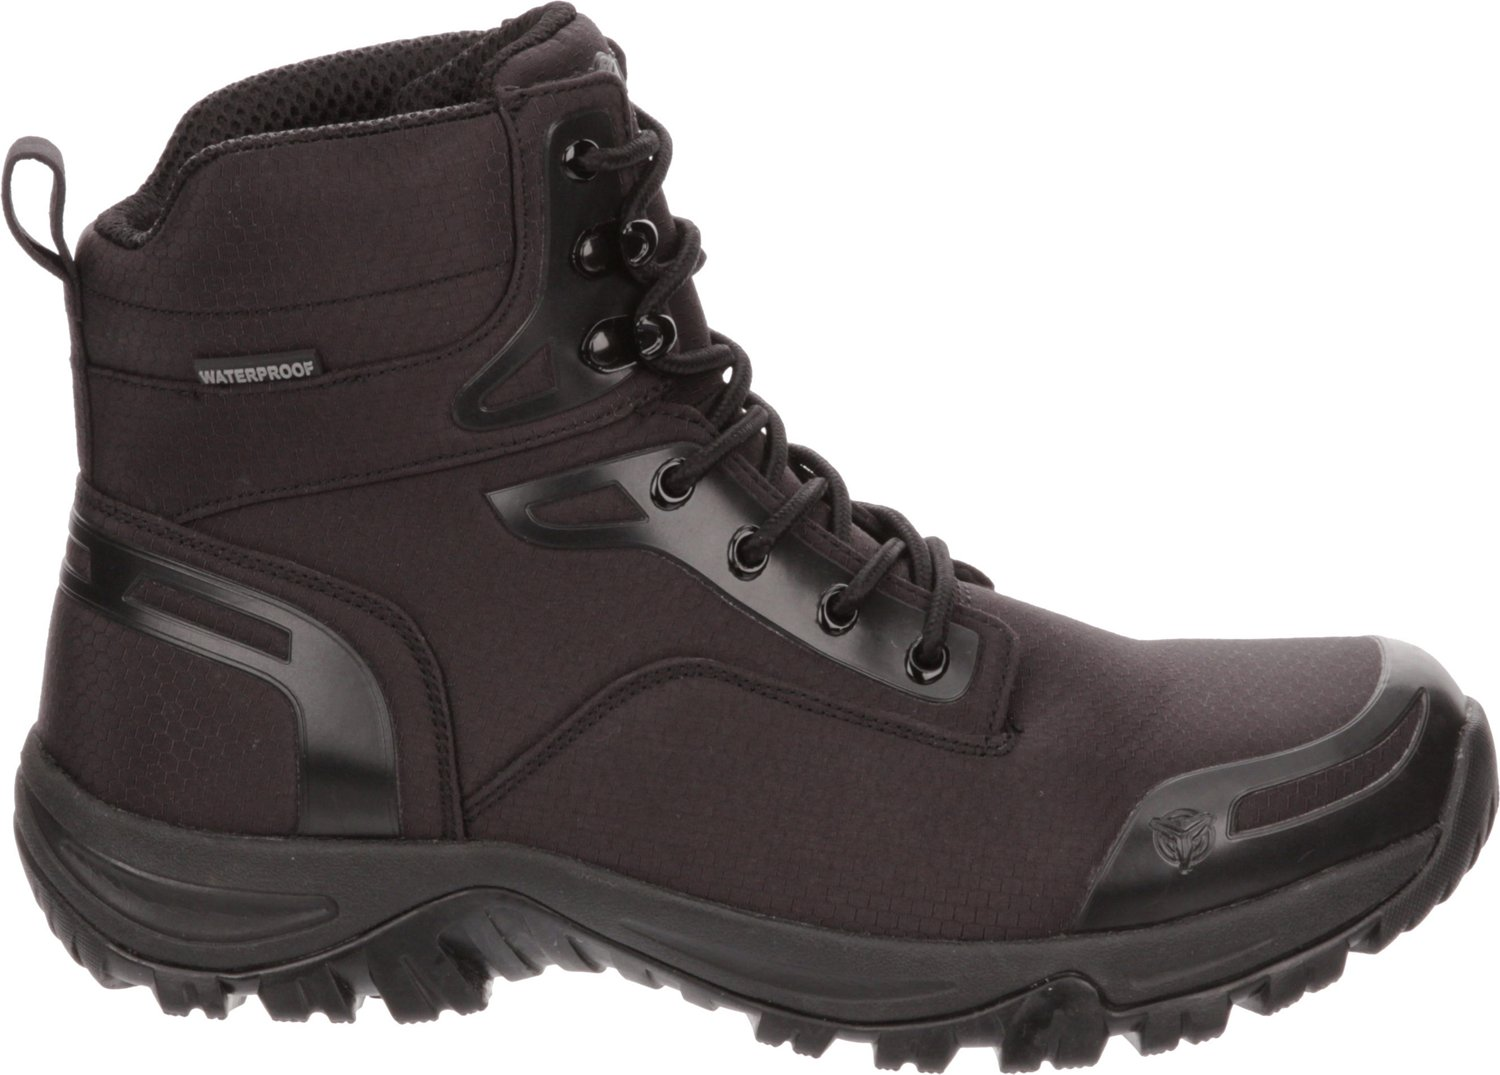 45601a1d77f Display product reviews for Tactical Performance Men s Waterproof Stalker  Service Boots